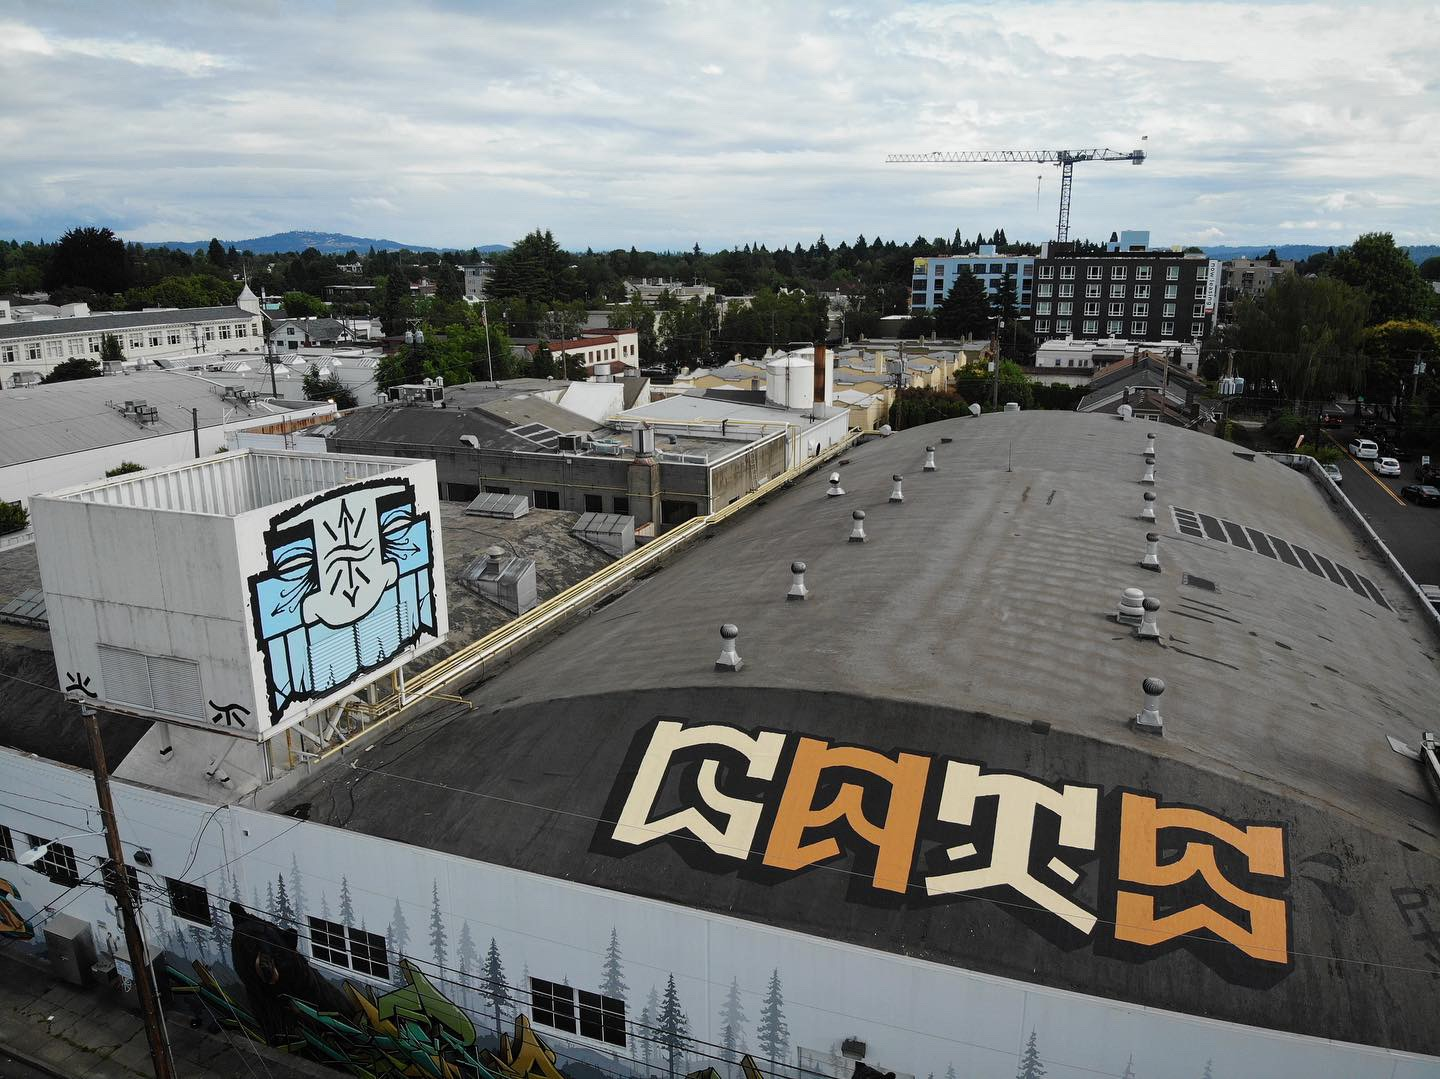 Mural work by GATS. Photo: InvoicePDX.